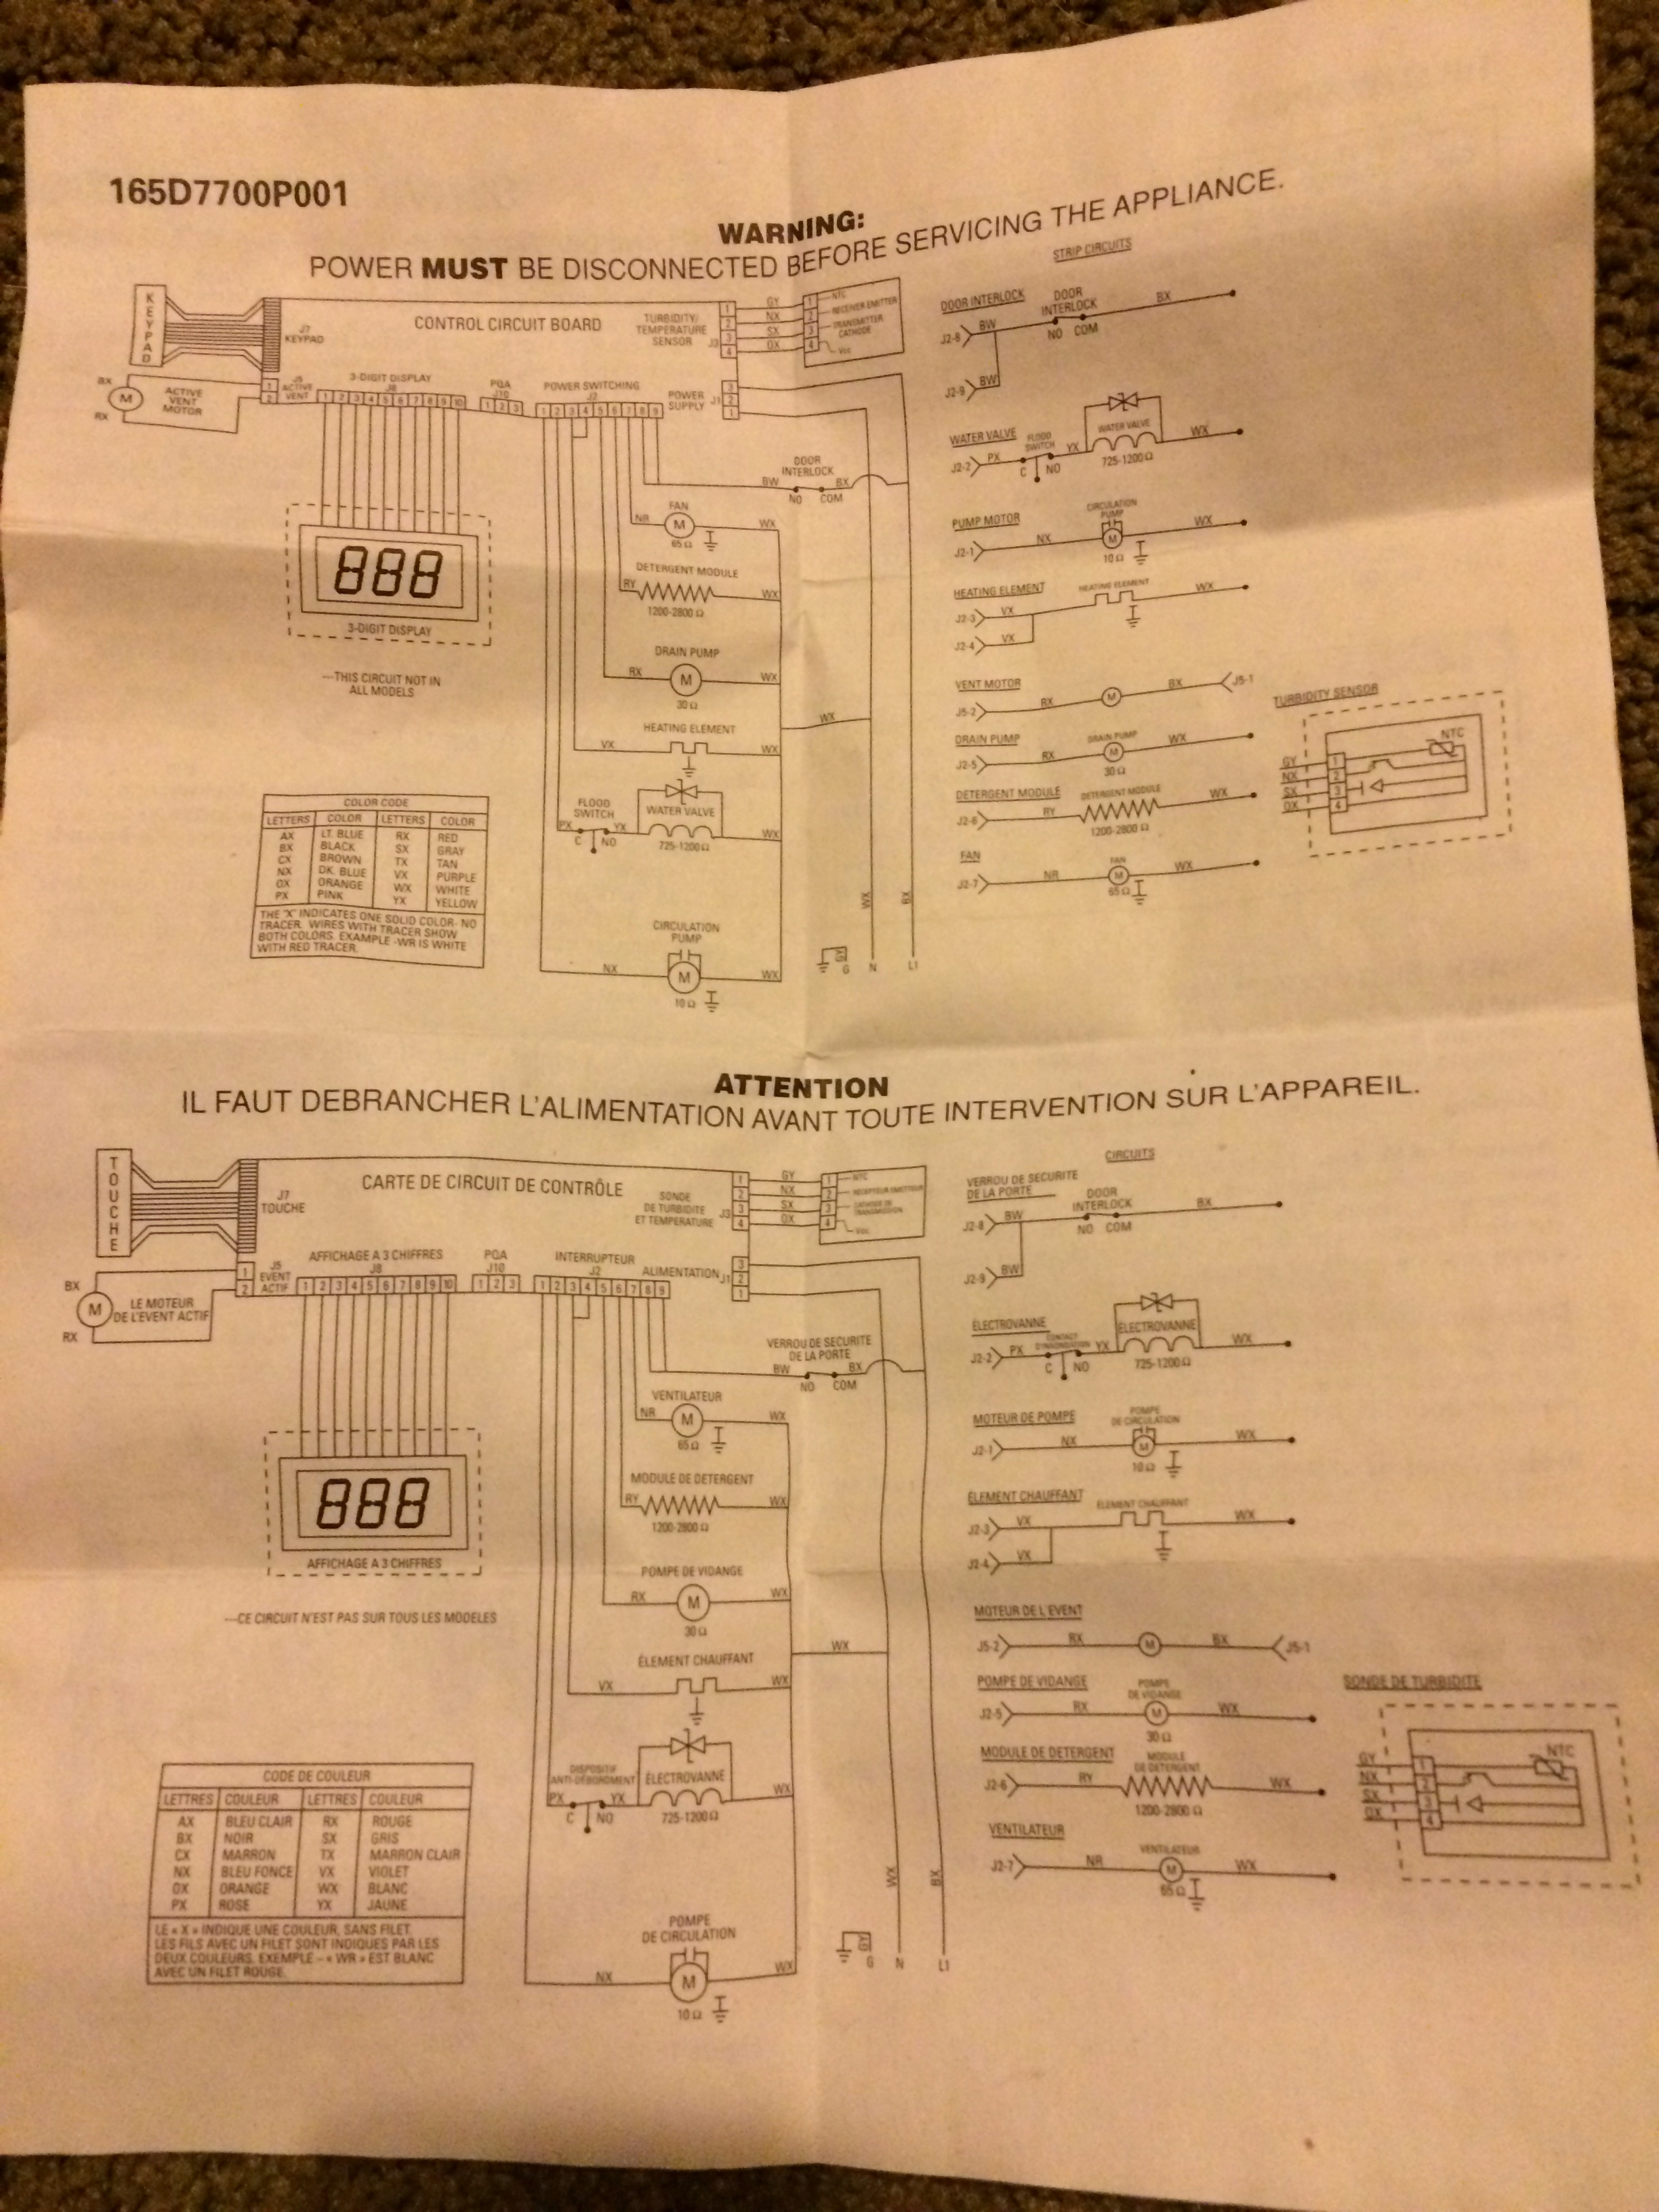 I Have A Ge Profile Pdw9880j00ss Dishwasher  I Recently